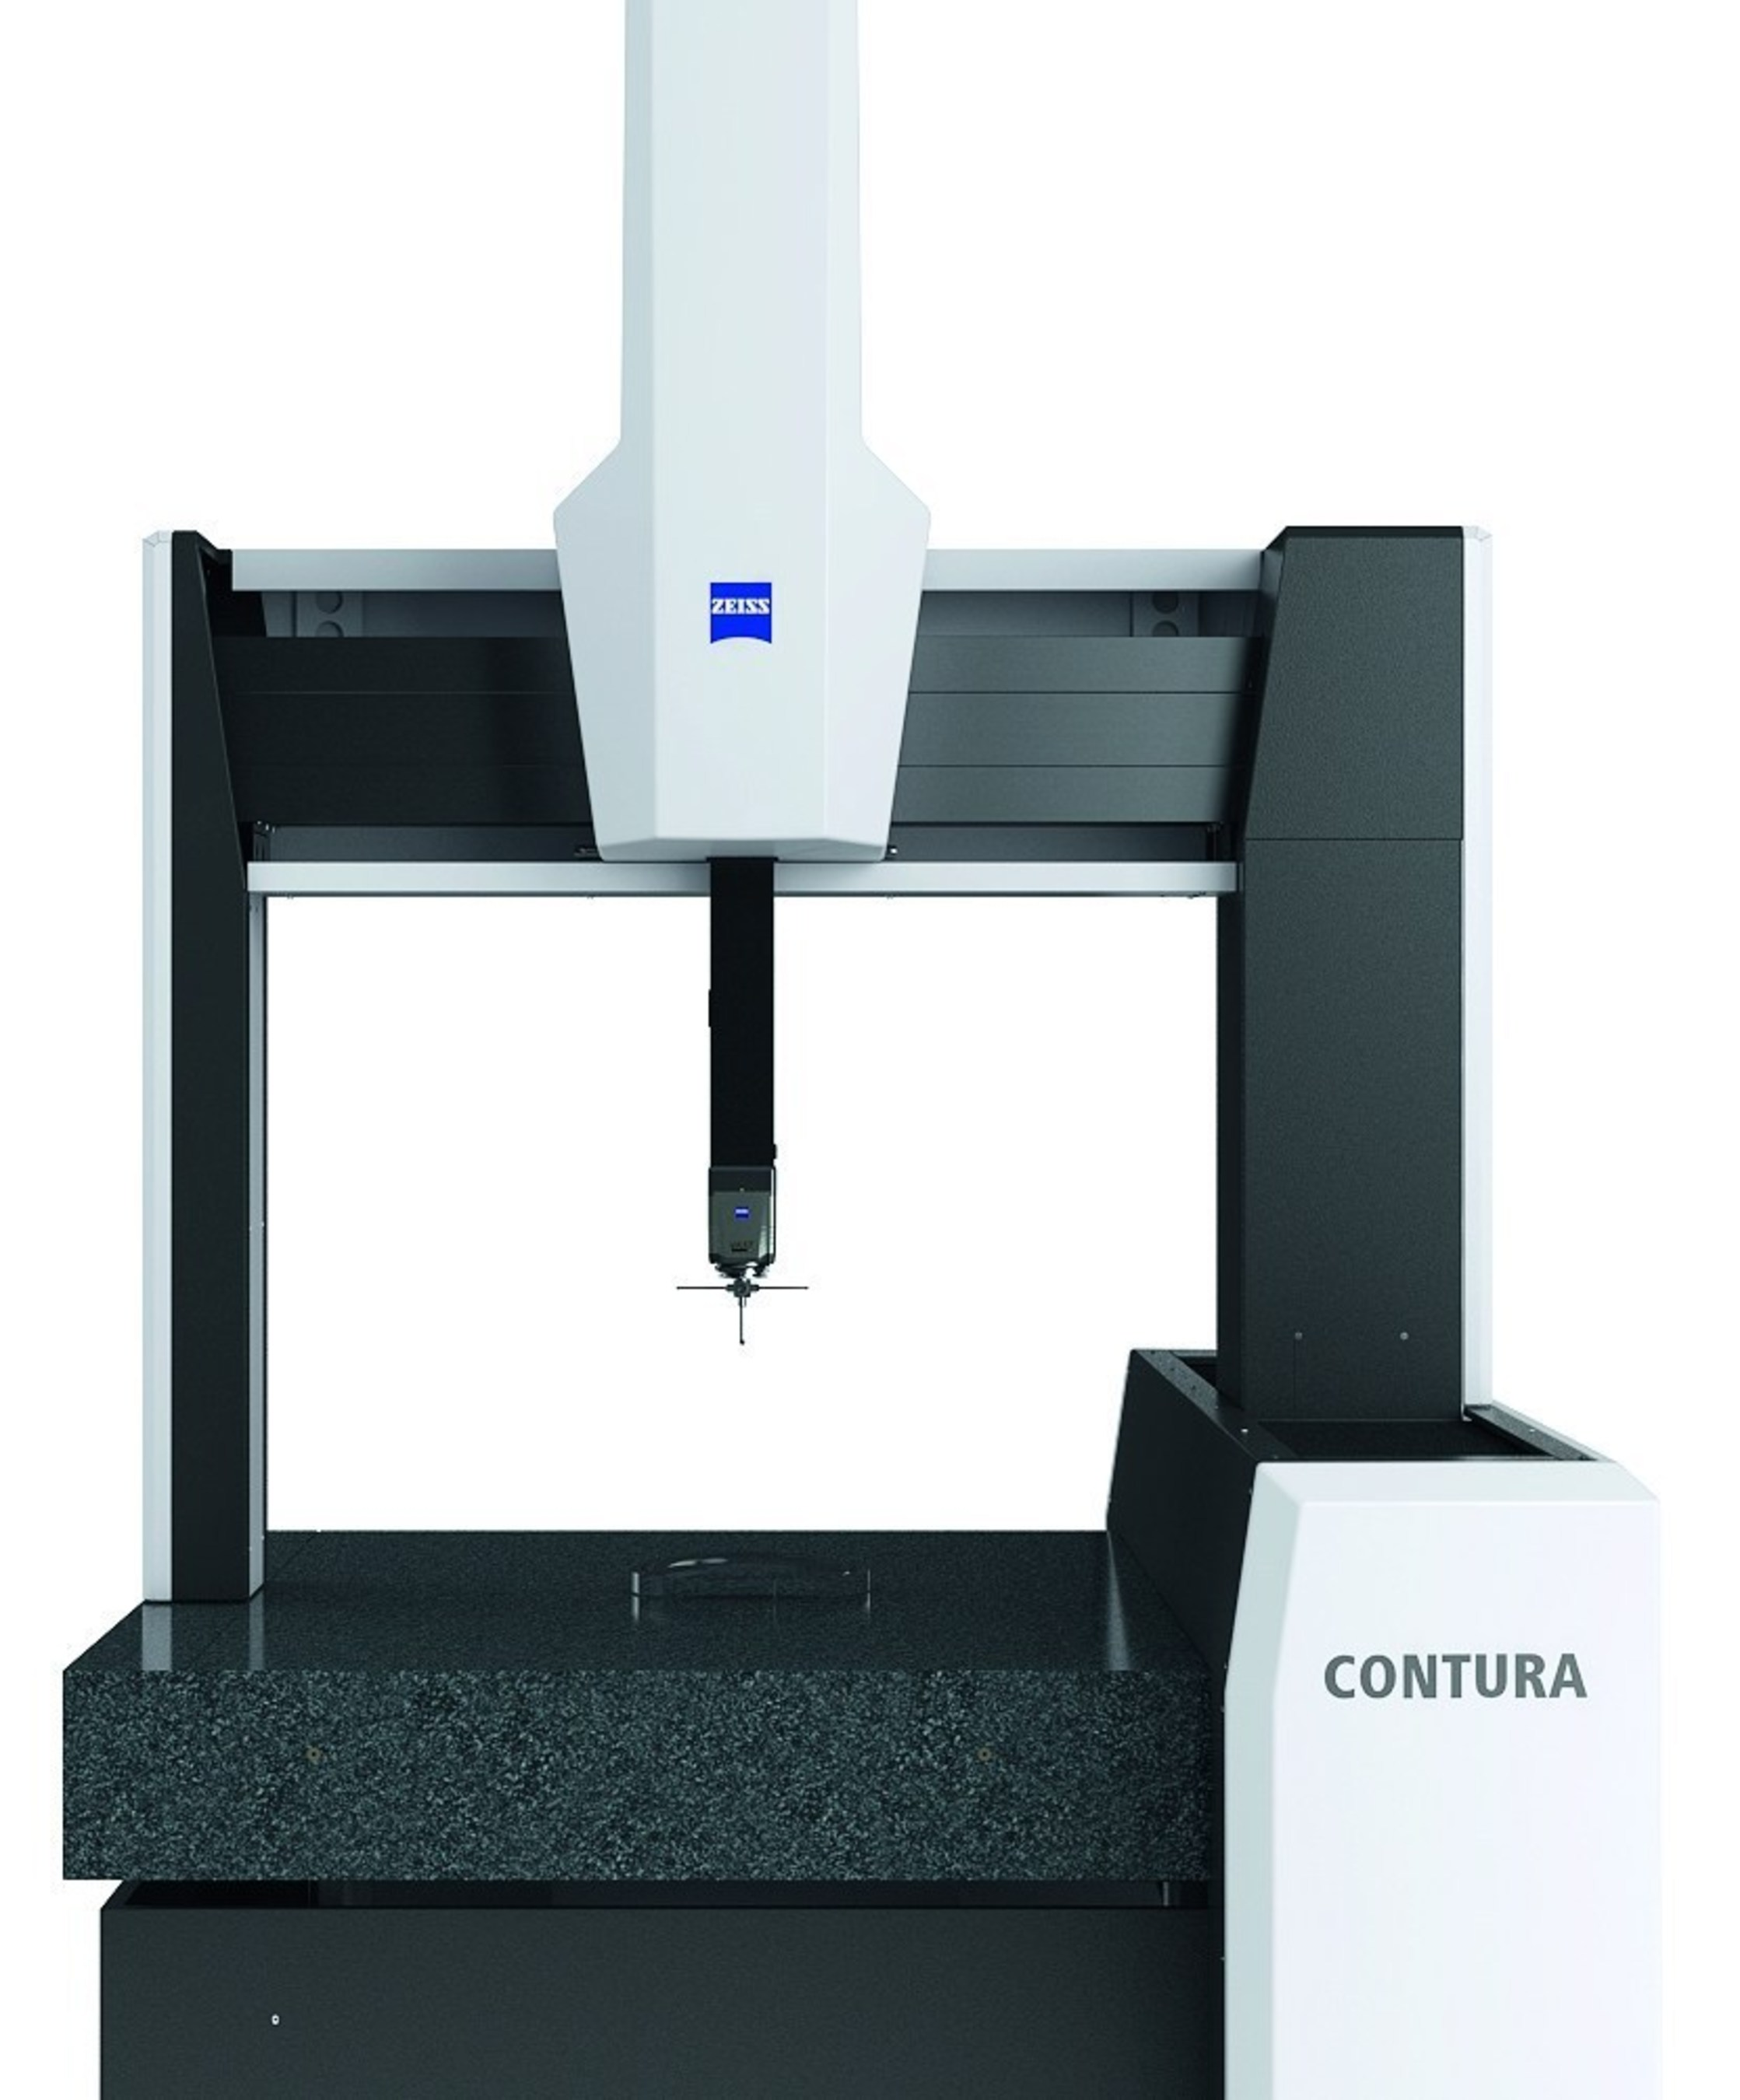 Larger sizes of the new ZEISS CONTURA coordinate measuring